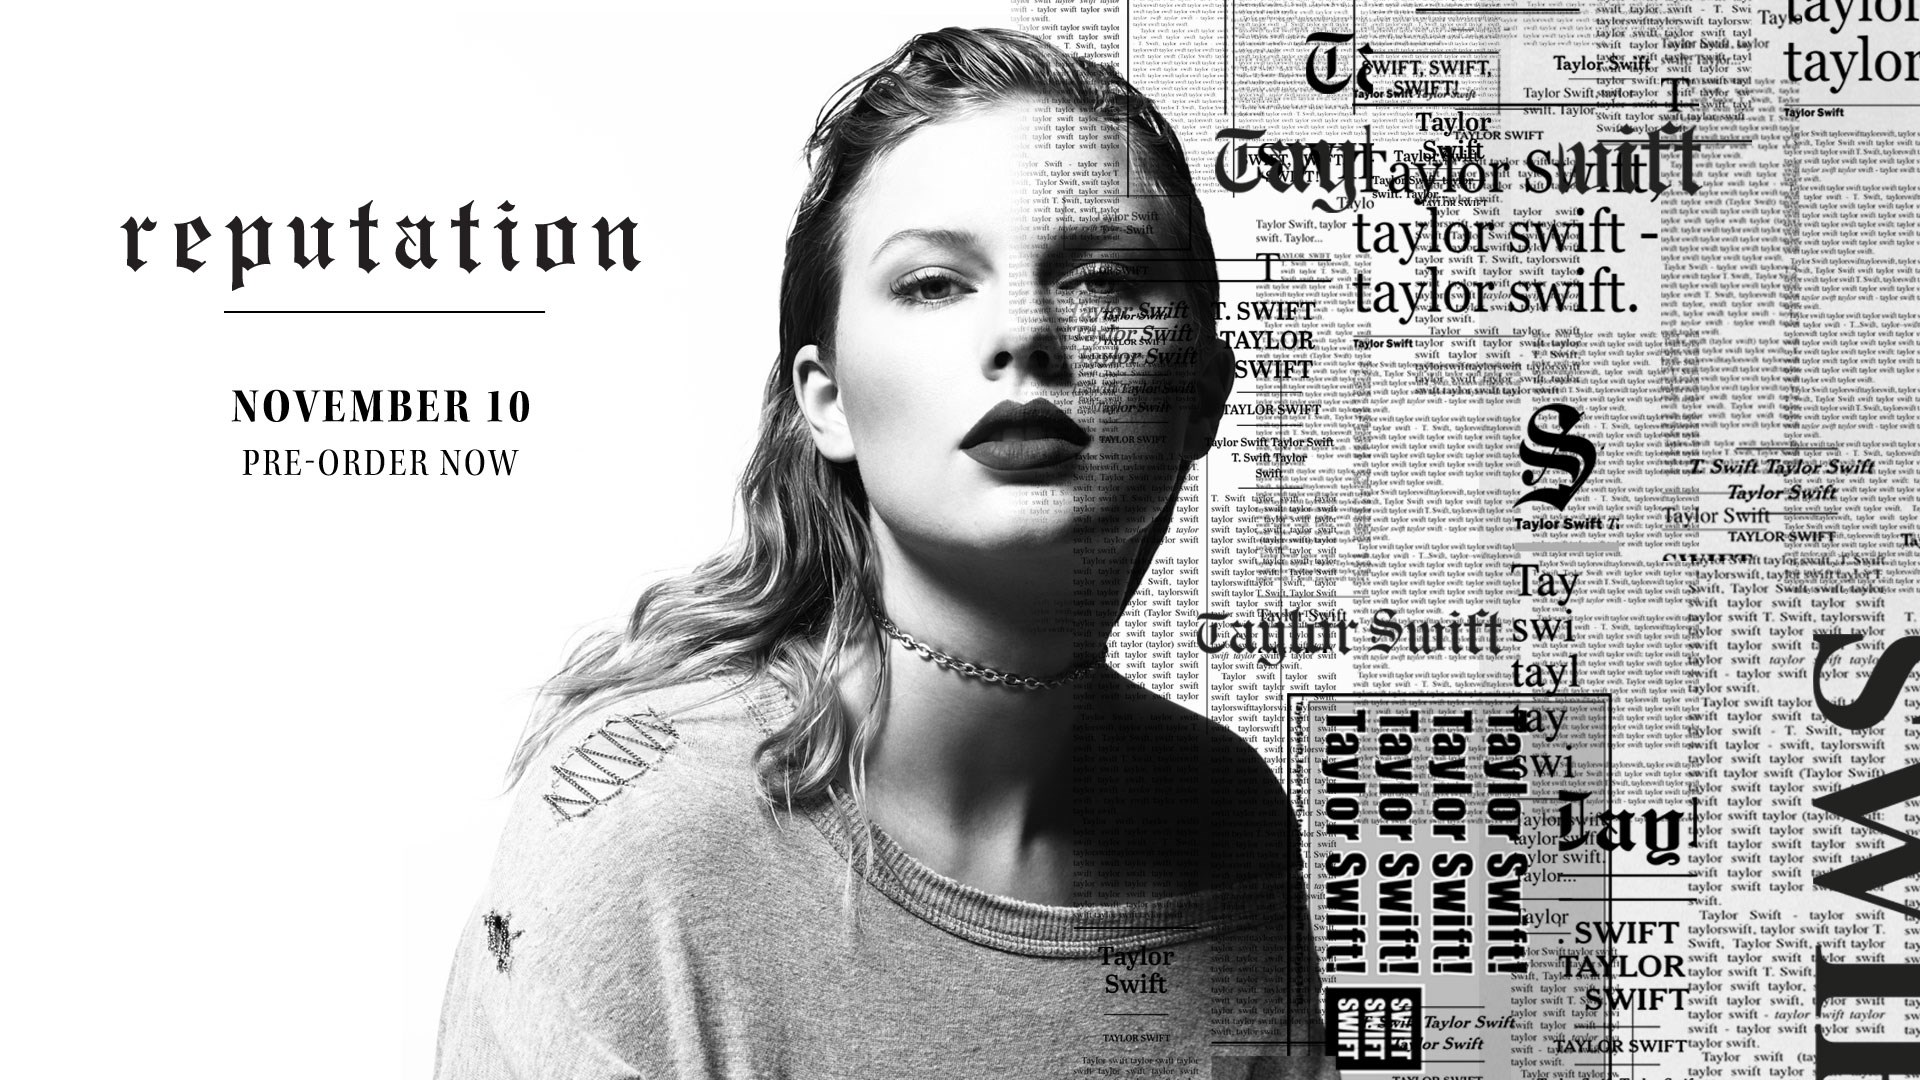 The album cover for Taylor Swift's reputation, along with title, launch and pre-order info